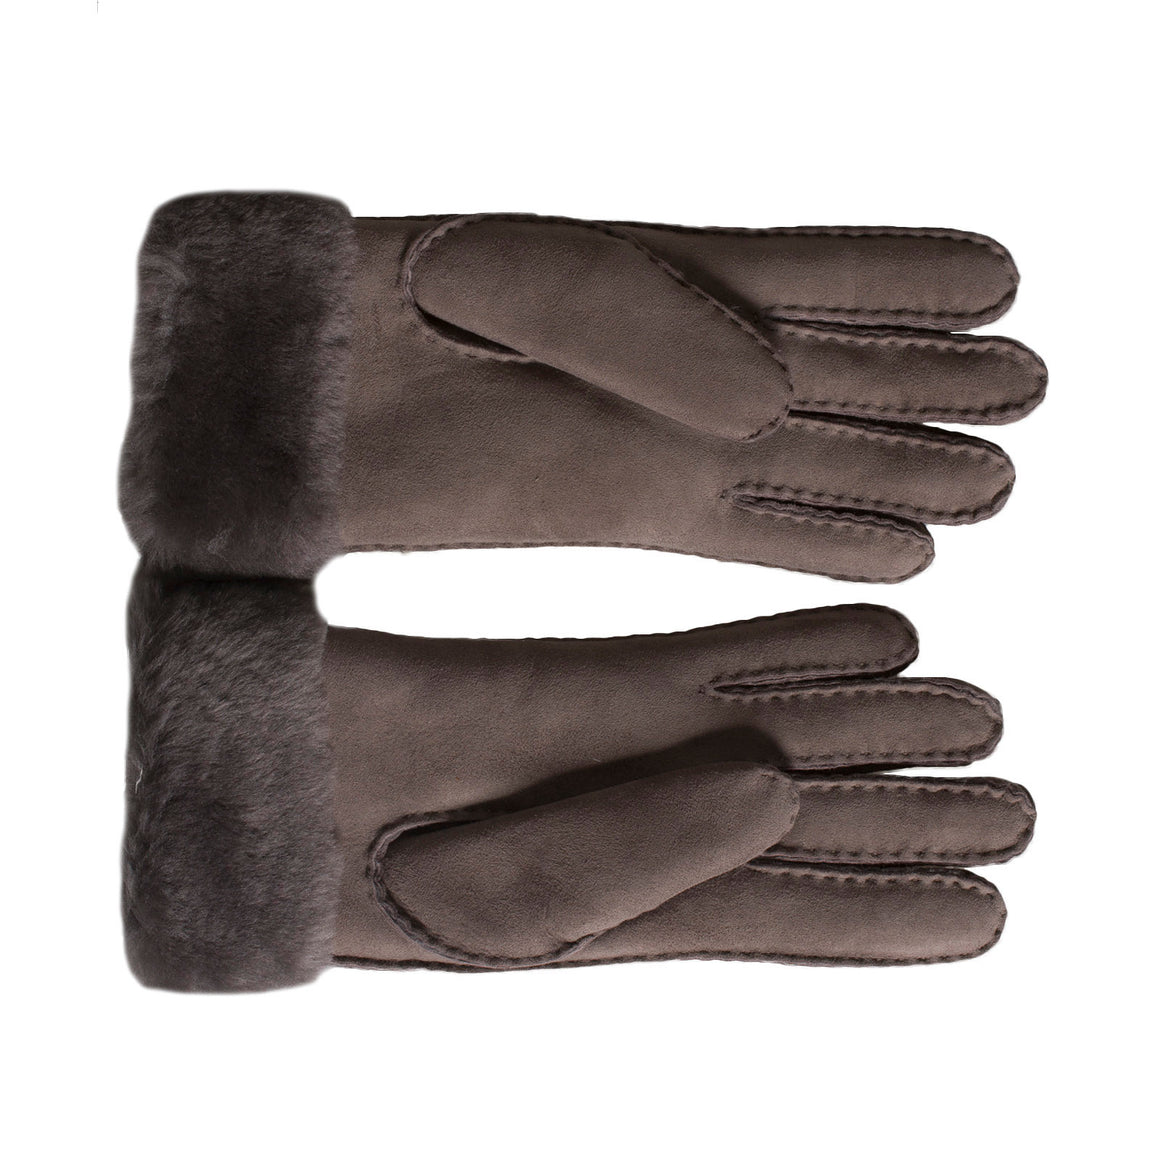 UGG Sheepskin Classic Turn Cuff Stormy Grey Gloves - Women's